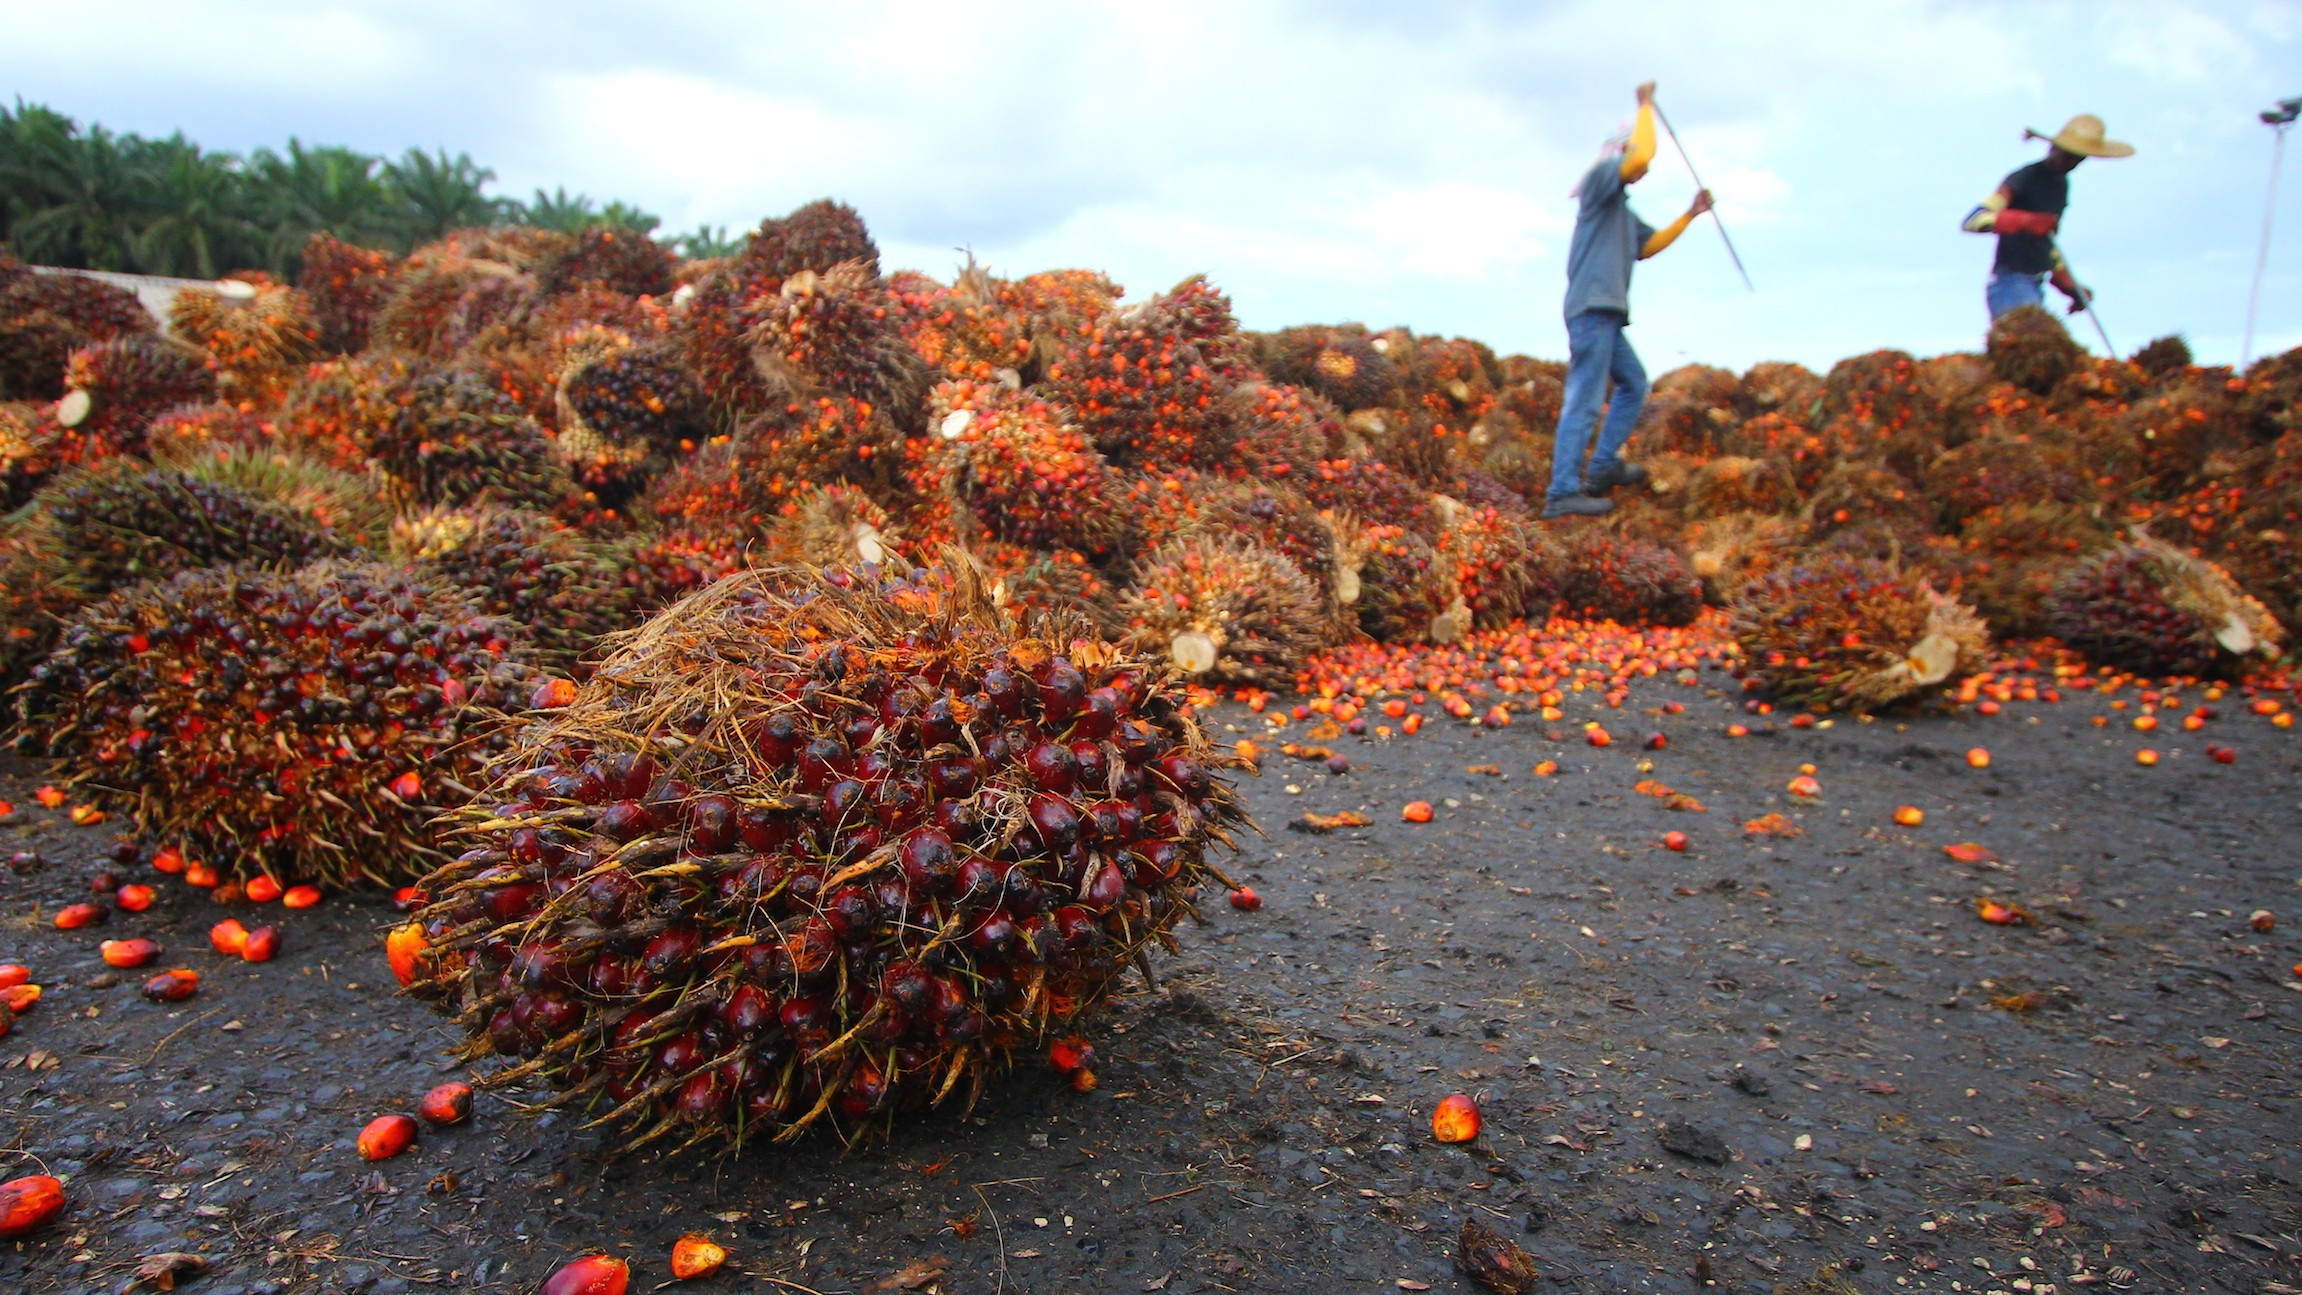 The Race for Sustainable Palm Oil